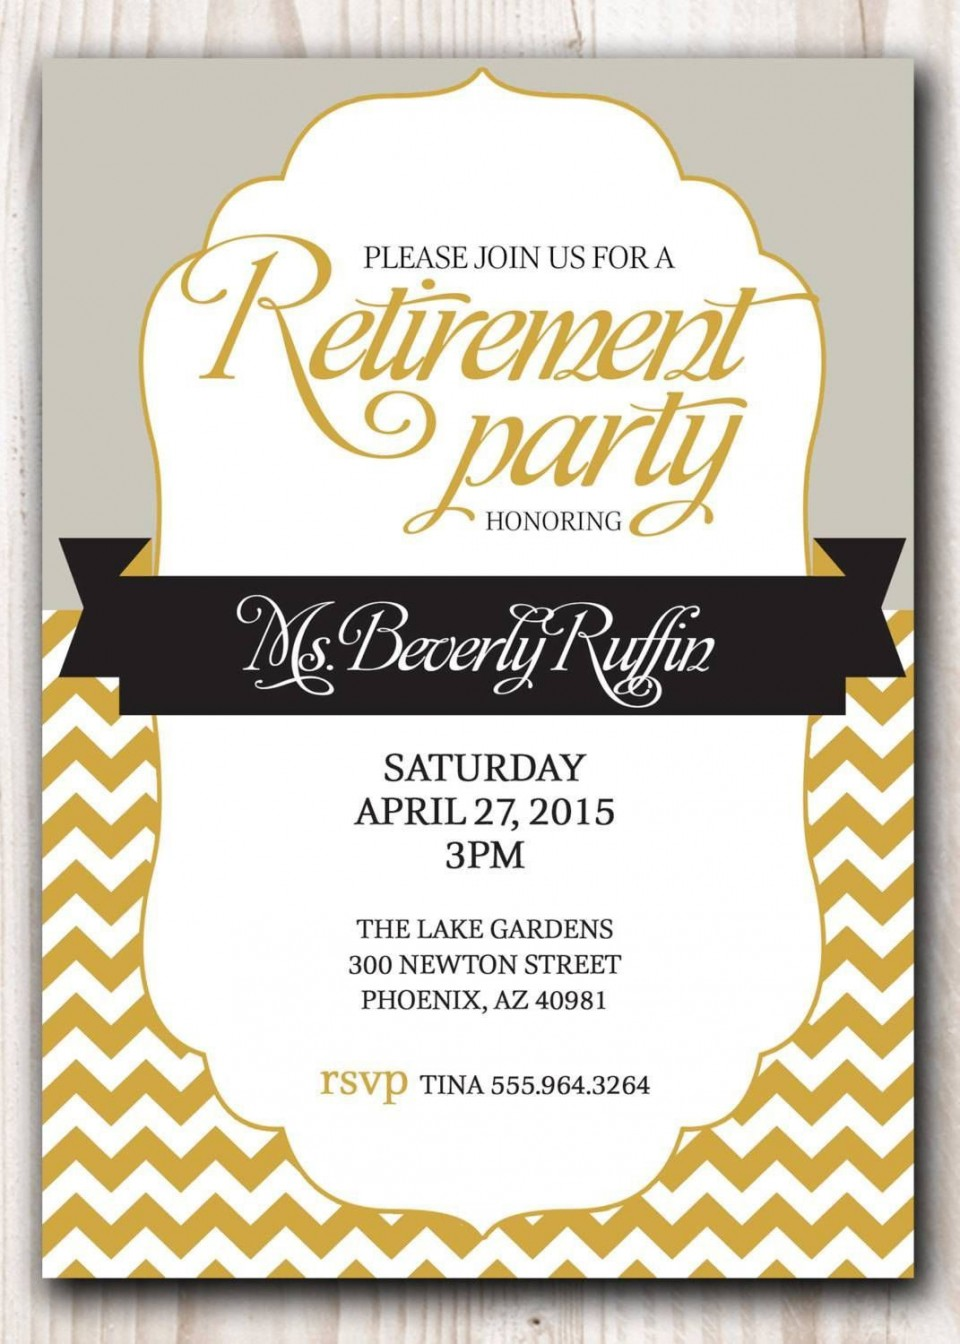 008 Incredible Retirement Party Invite Template Word Free Design 960